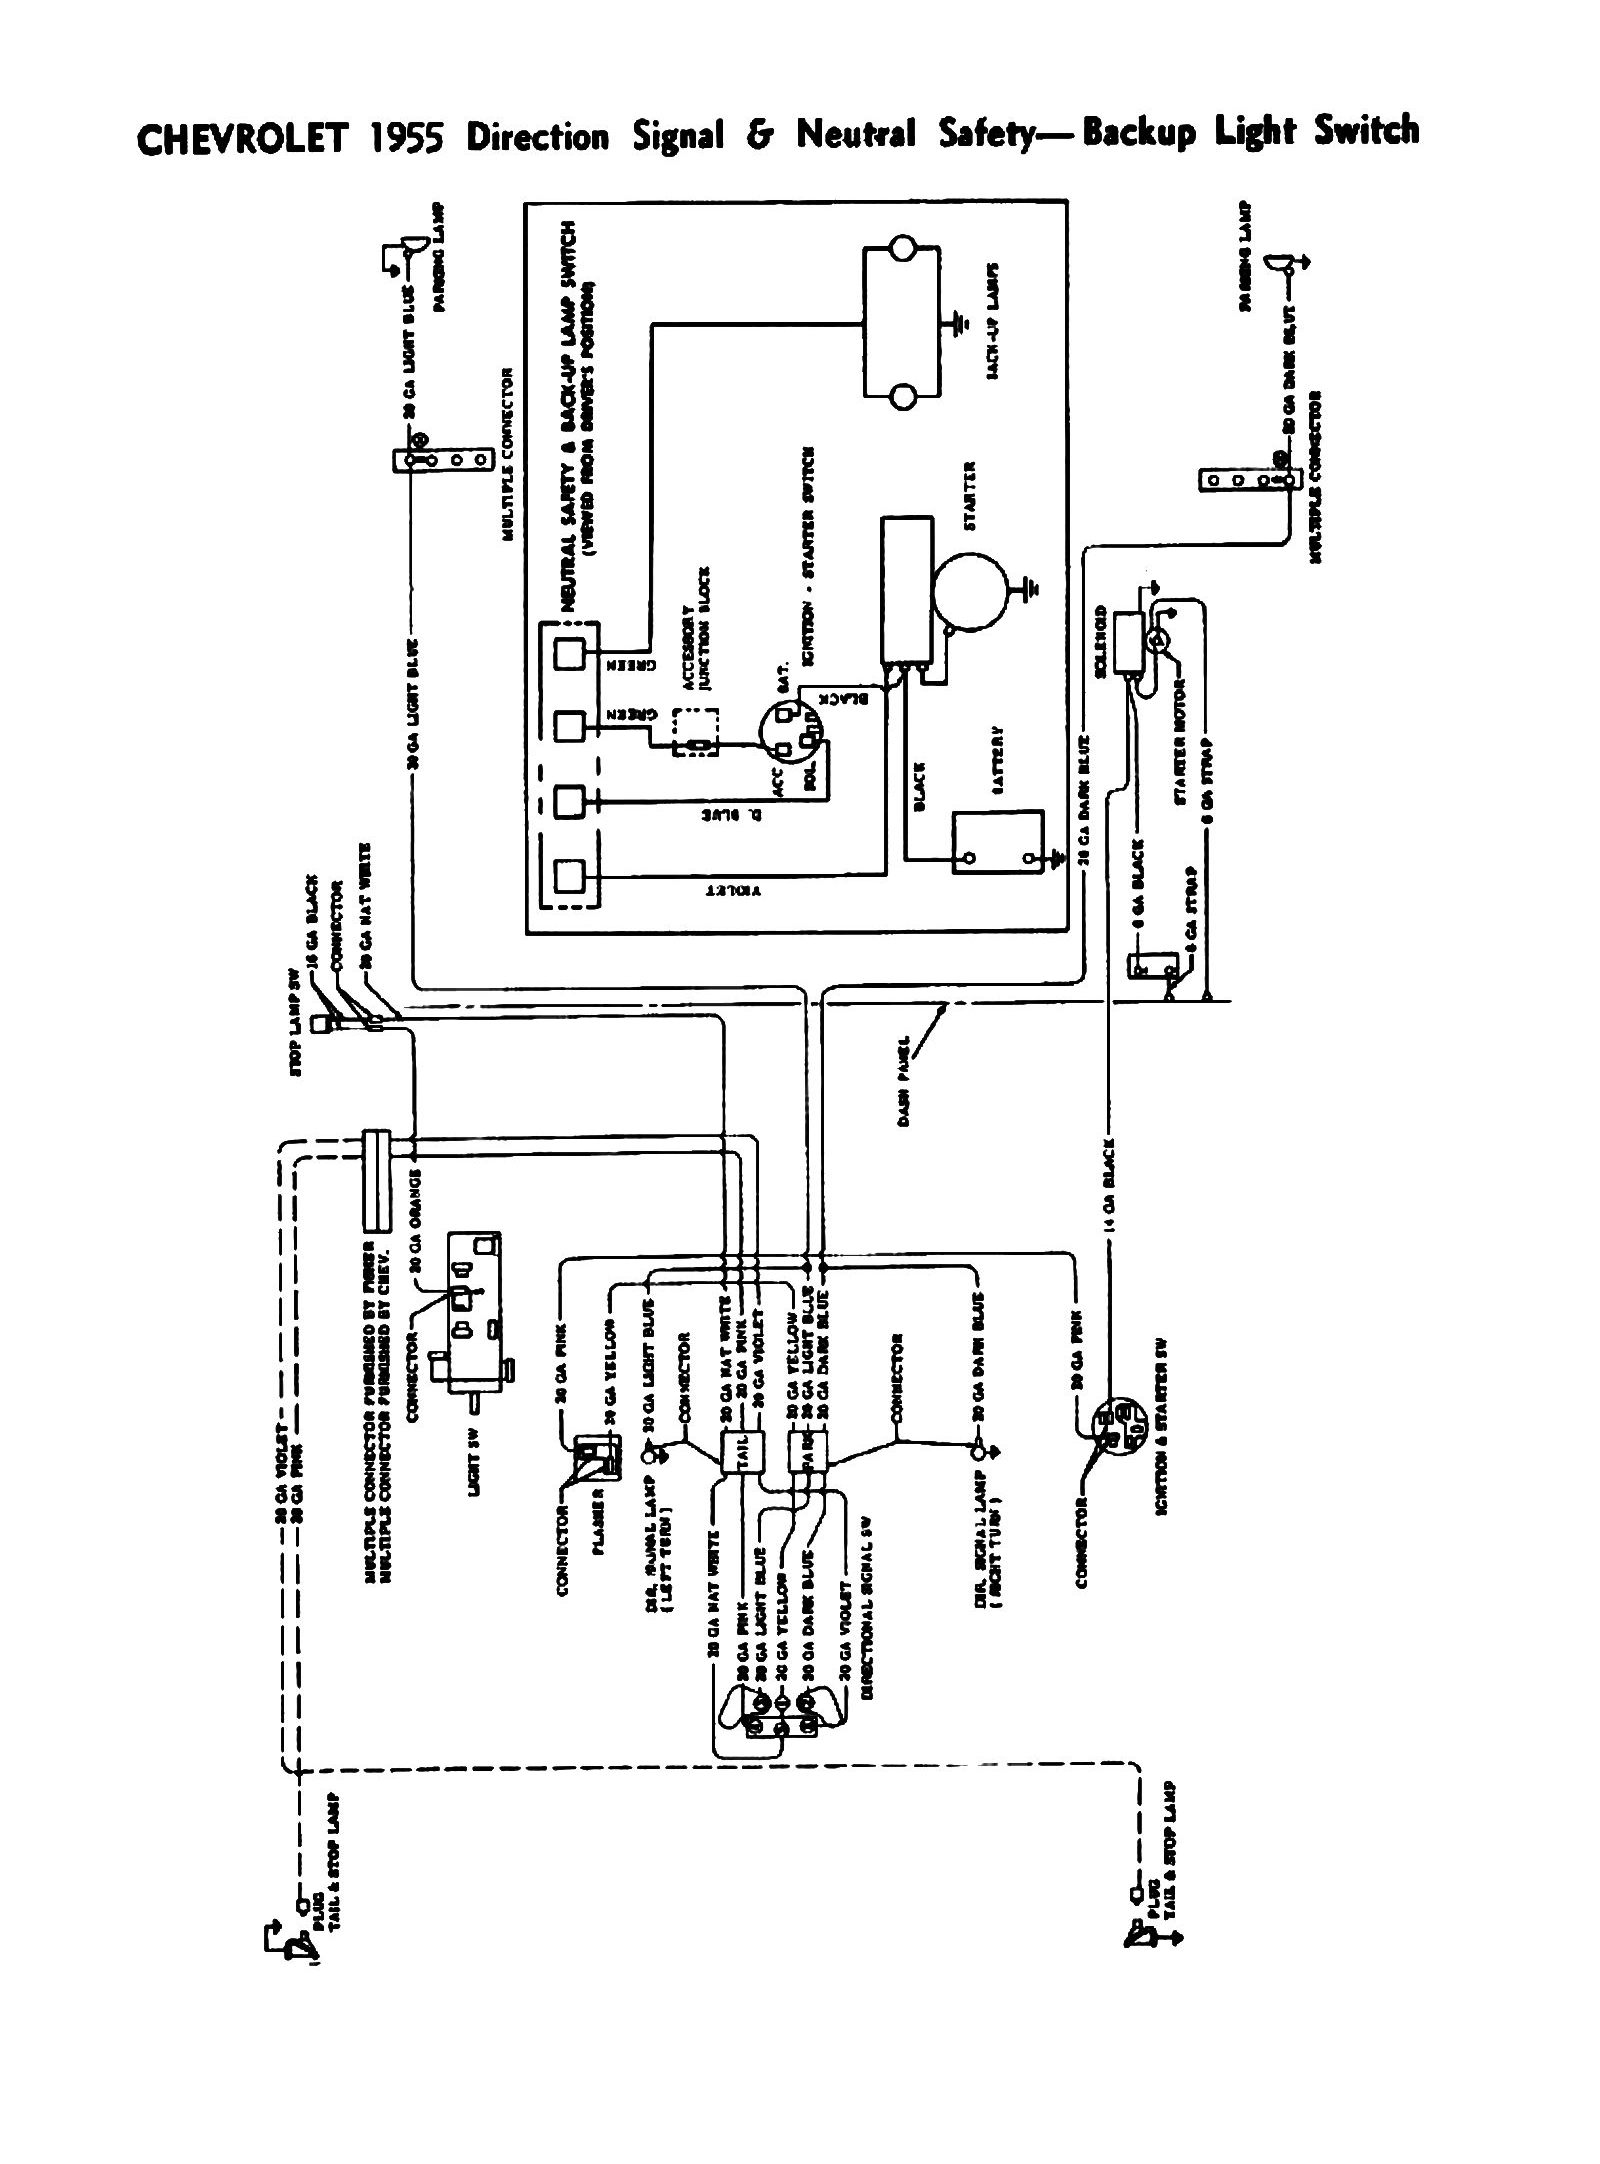 55signal 1956 chevy ignition switch wiring diagram 55 chevy ignition wiring 57 chevy wiring diagram at crackthecode.co